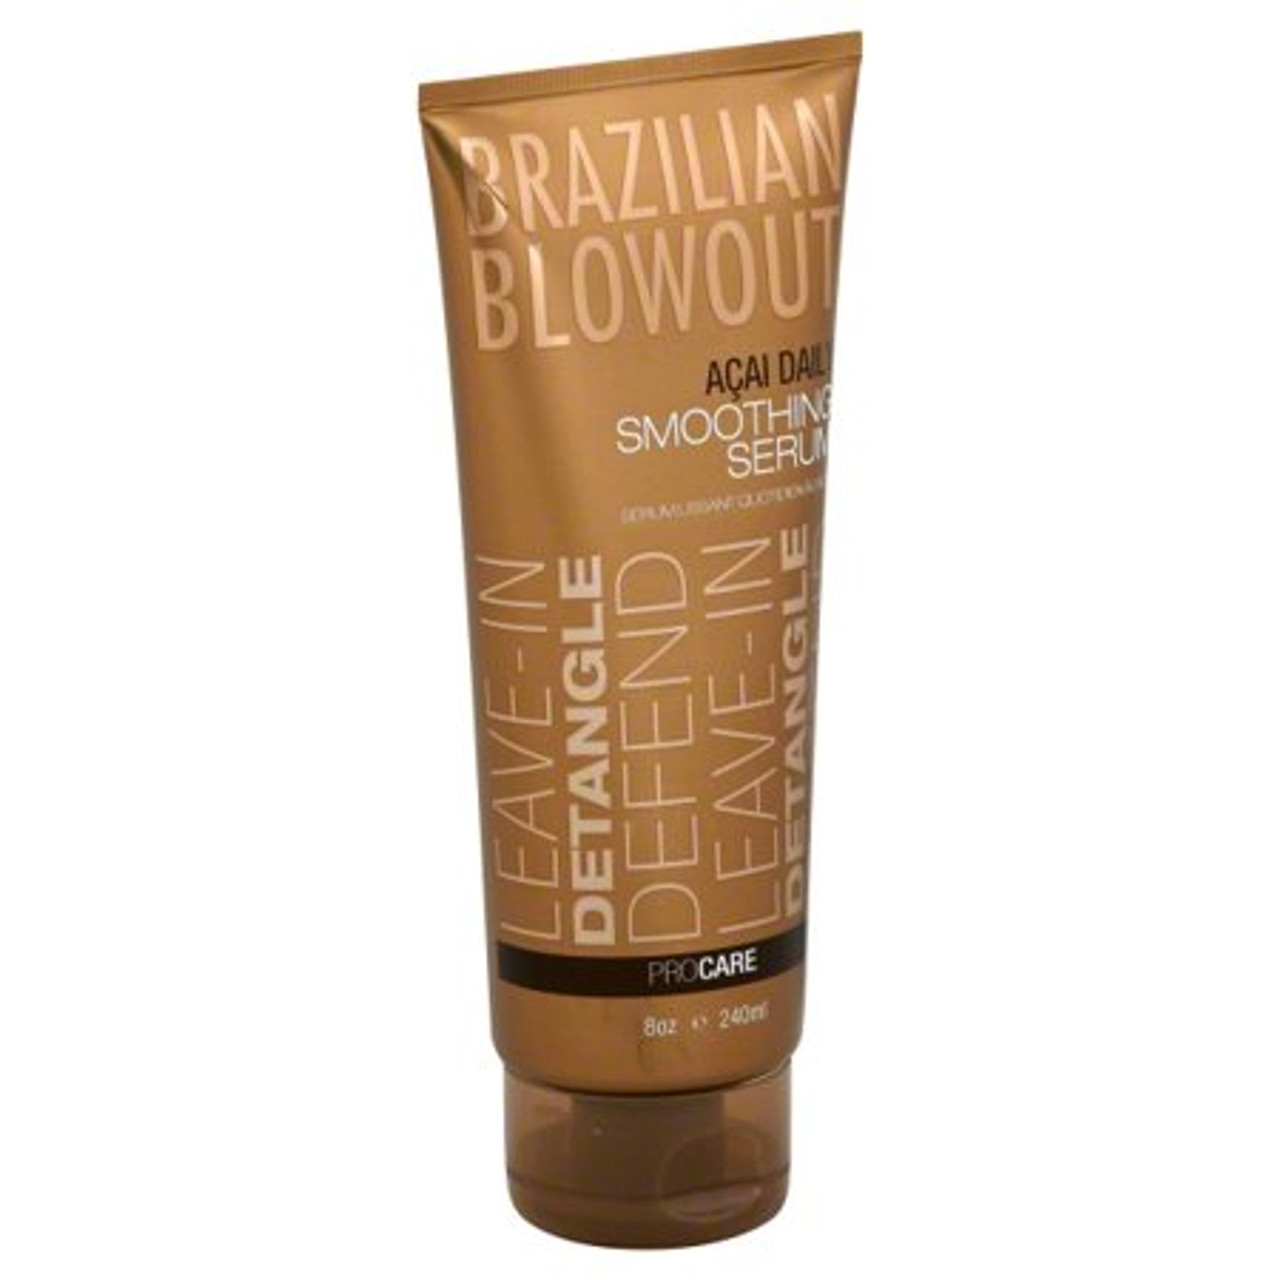 Brazilian Blowout Anti-Frizz Smoothing Serum 8 oz